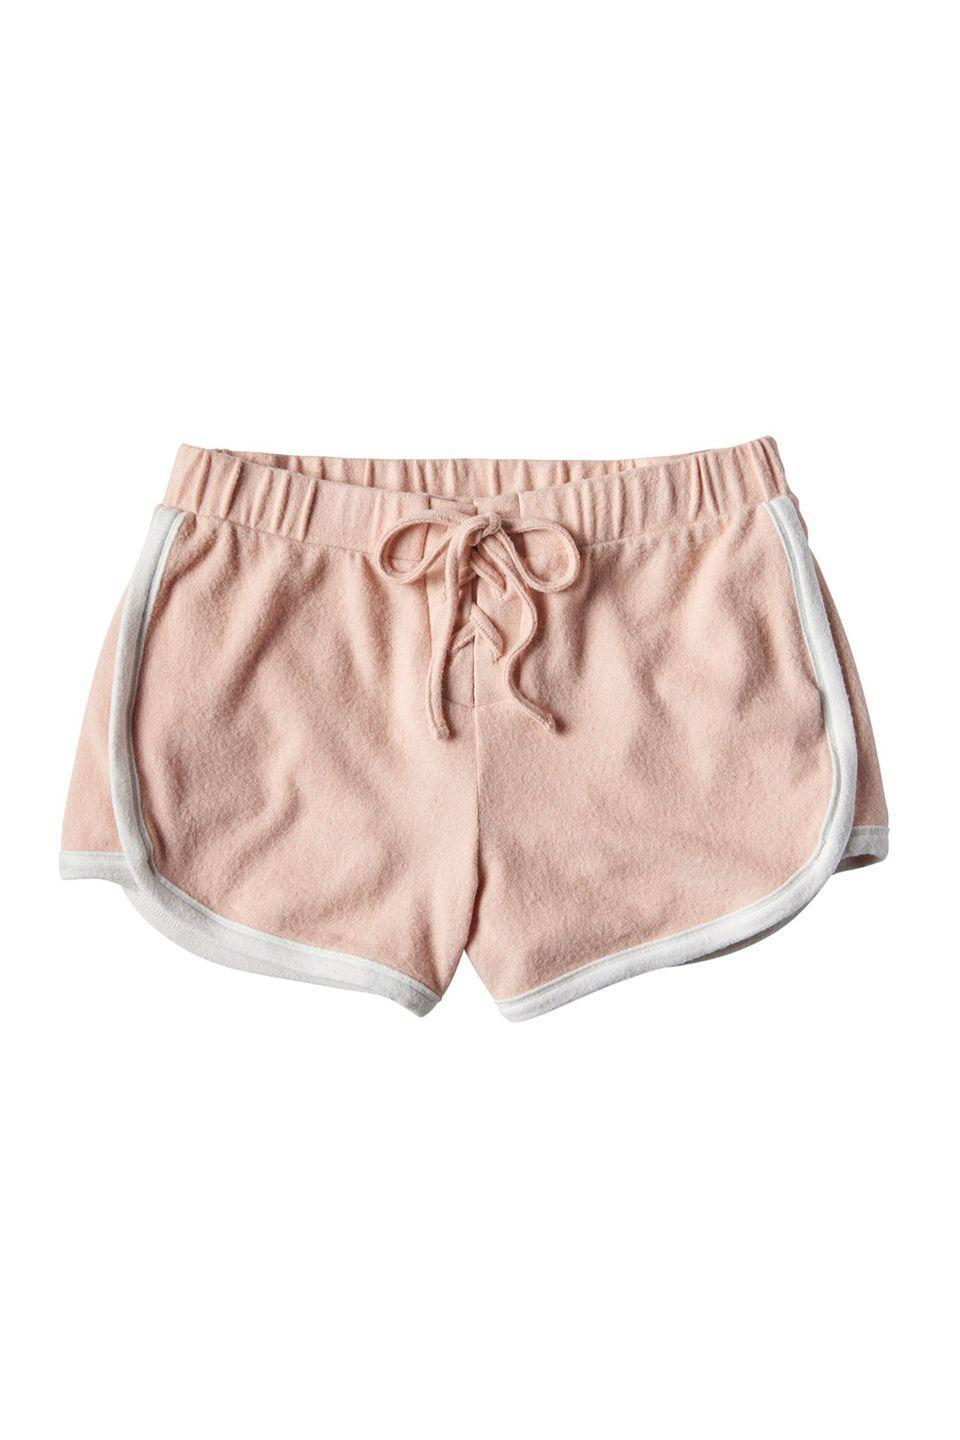 """<p>These will be your lounge-around go-to. Forever. </p><p>Aéropostale shorts, $12, <a href=""""http://www.aeropostale.com/"""" rel=""""nofollow noopener"""" target=""""_blank"""" data-ylk=""""slk:aeropostale.com"""" class=""""link rapid-noclick-resp"""">aeropostale.com</a></p>"""